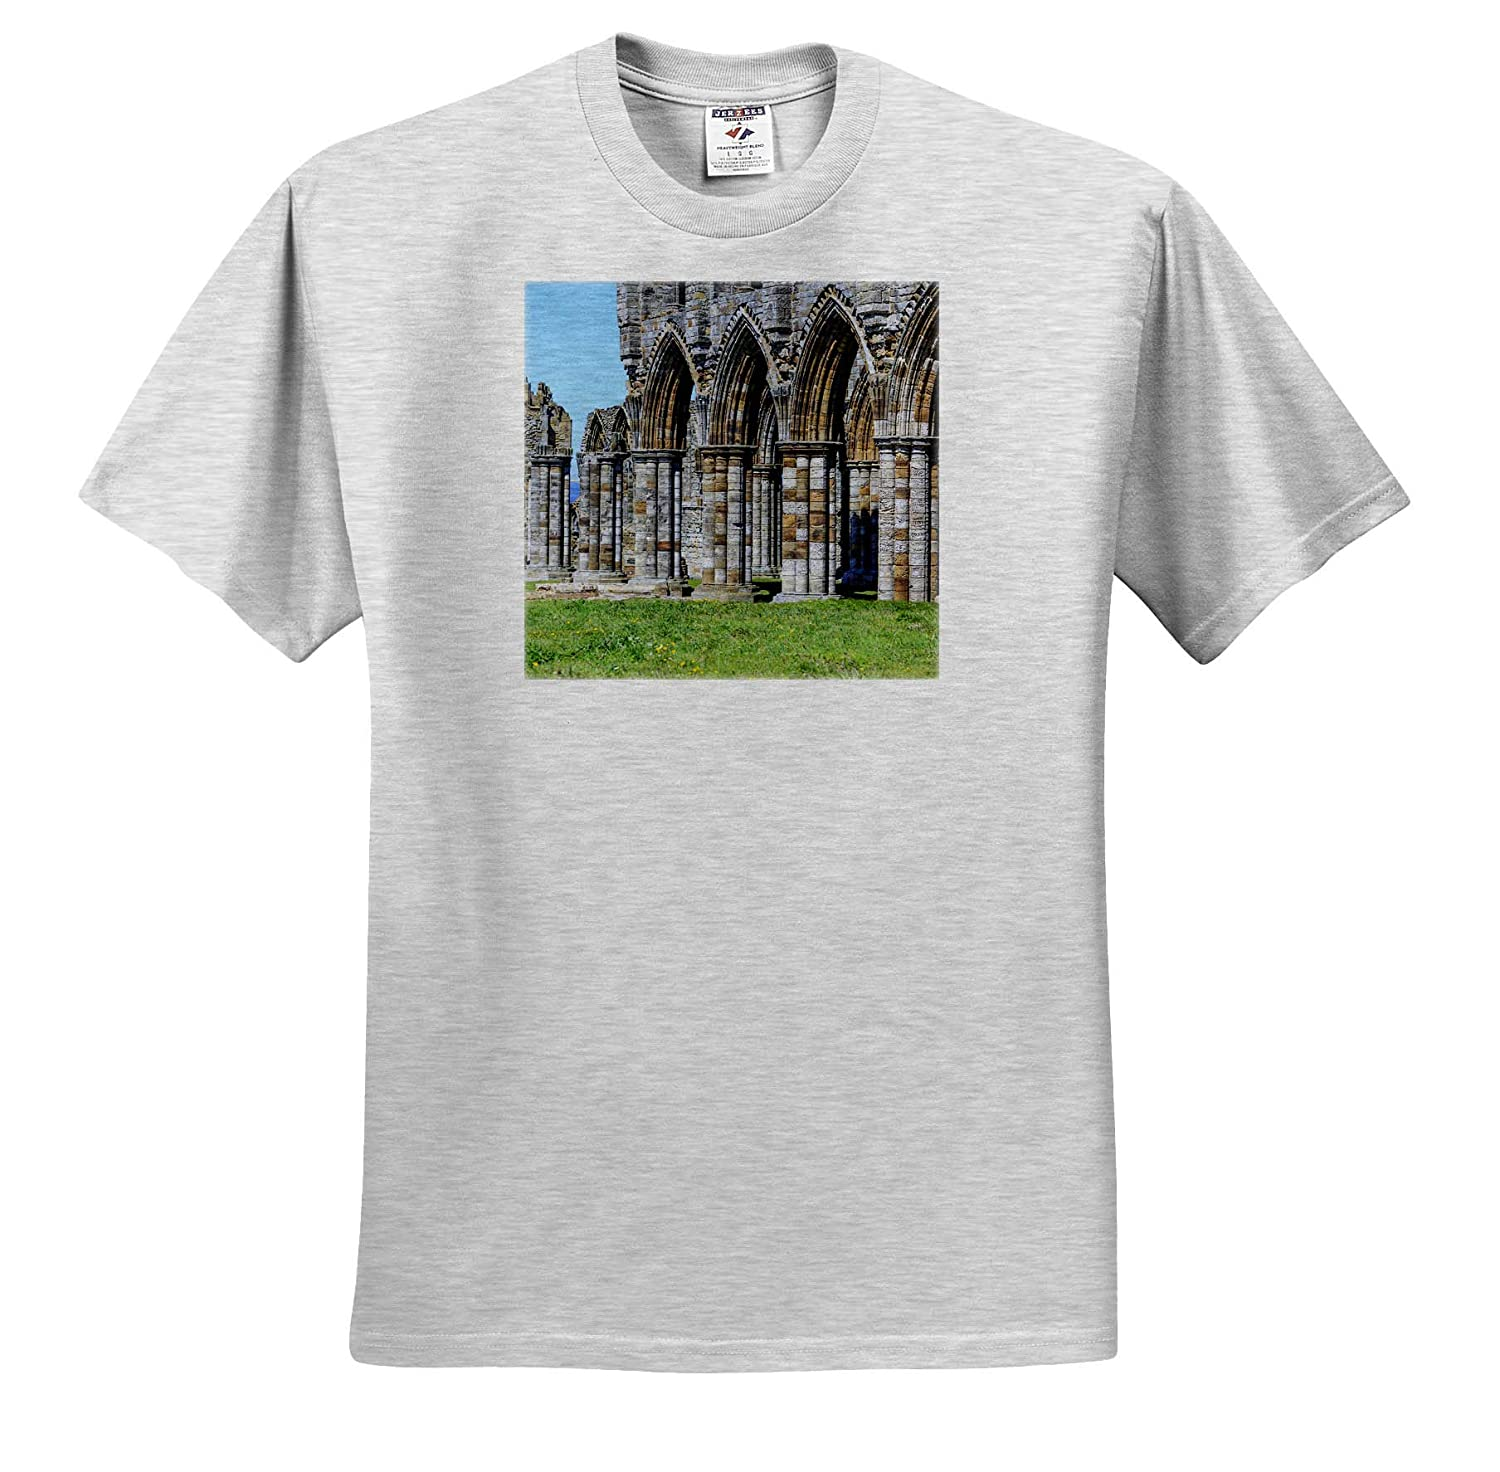 England Whitby Abbey North Yorkshire - Adult T-Shirt XL ts/_313878 England 3dRose Danita Delimont Whitby